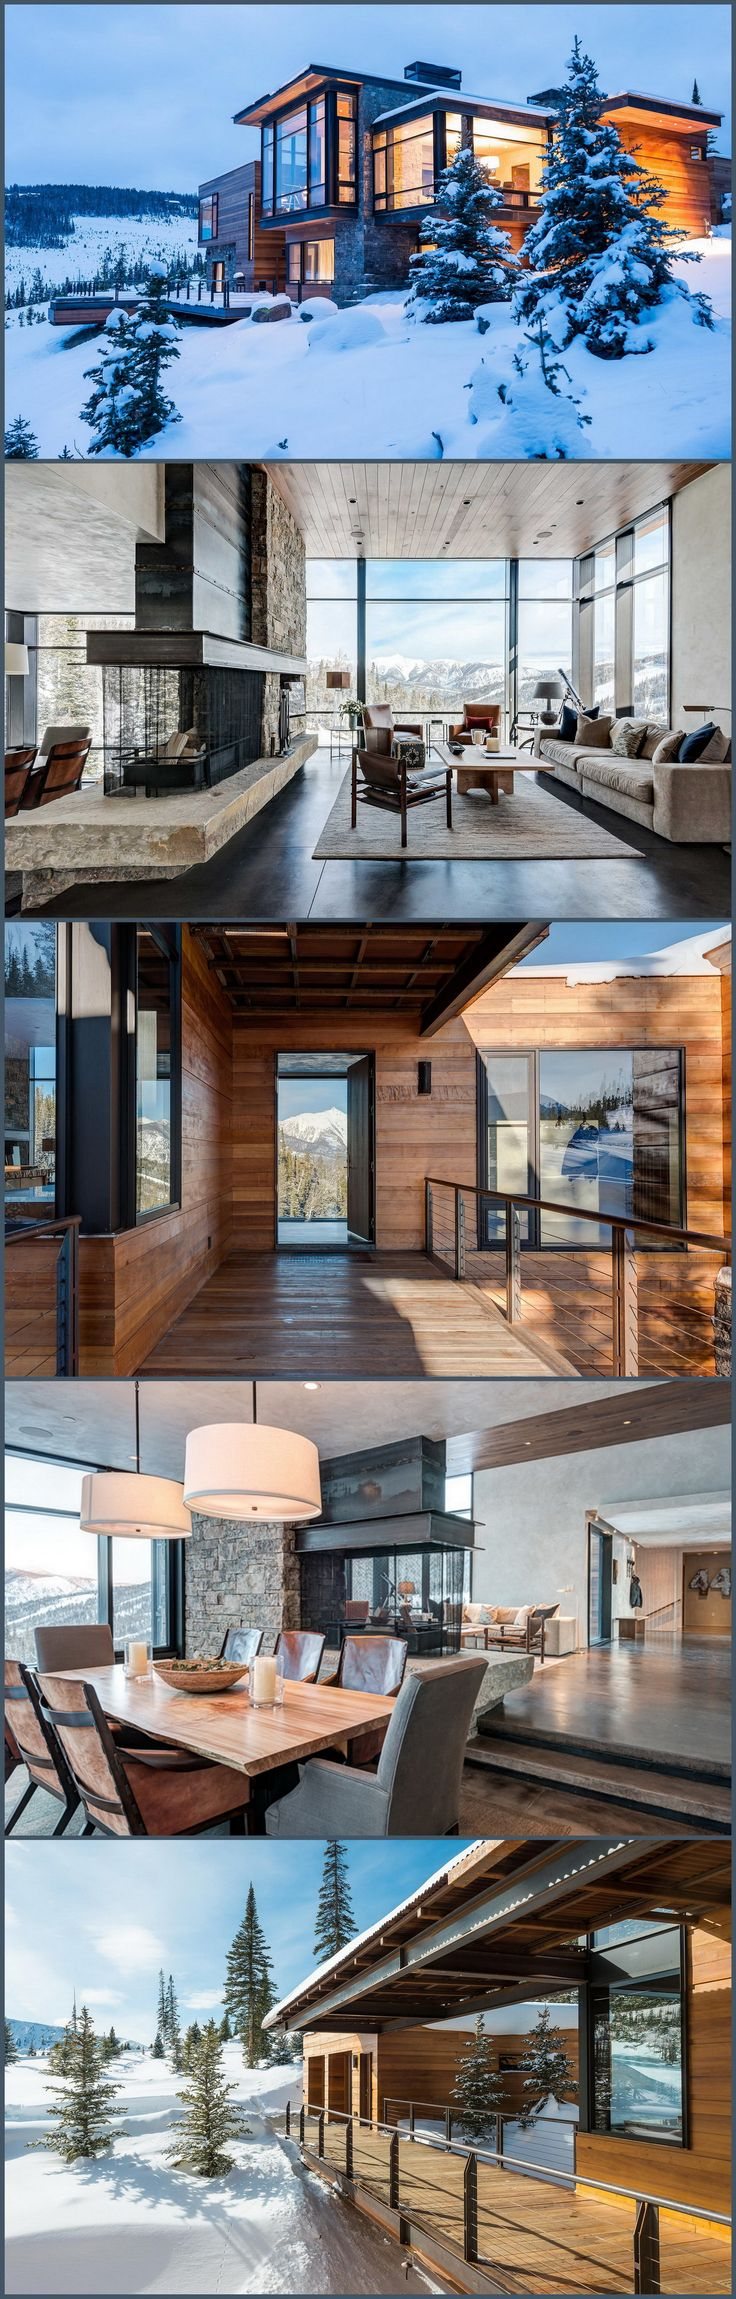 Tremendous 17 Best Ideas About Modern Homes On Pinterest Modern Houses Largest Home Design Picture Inspirations Pitcheantrous